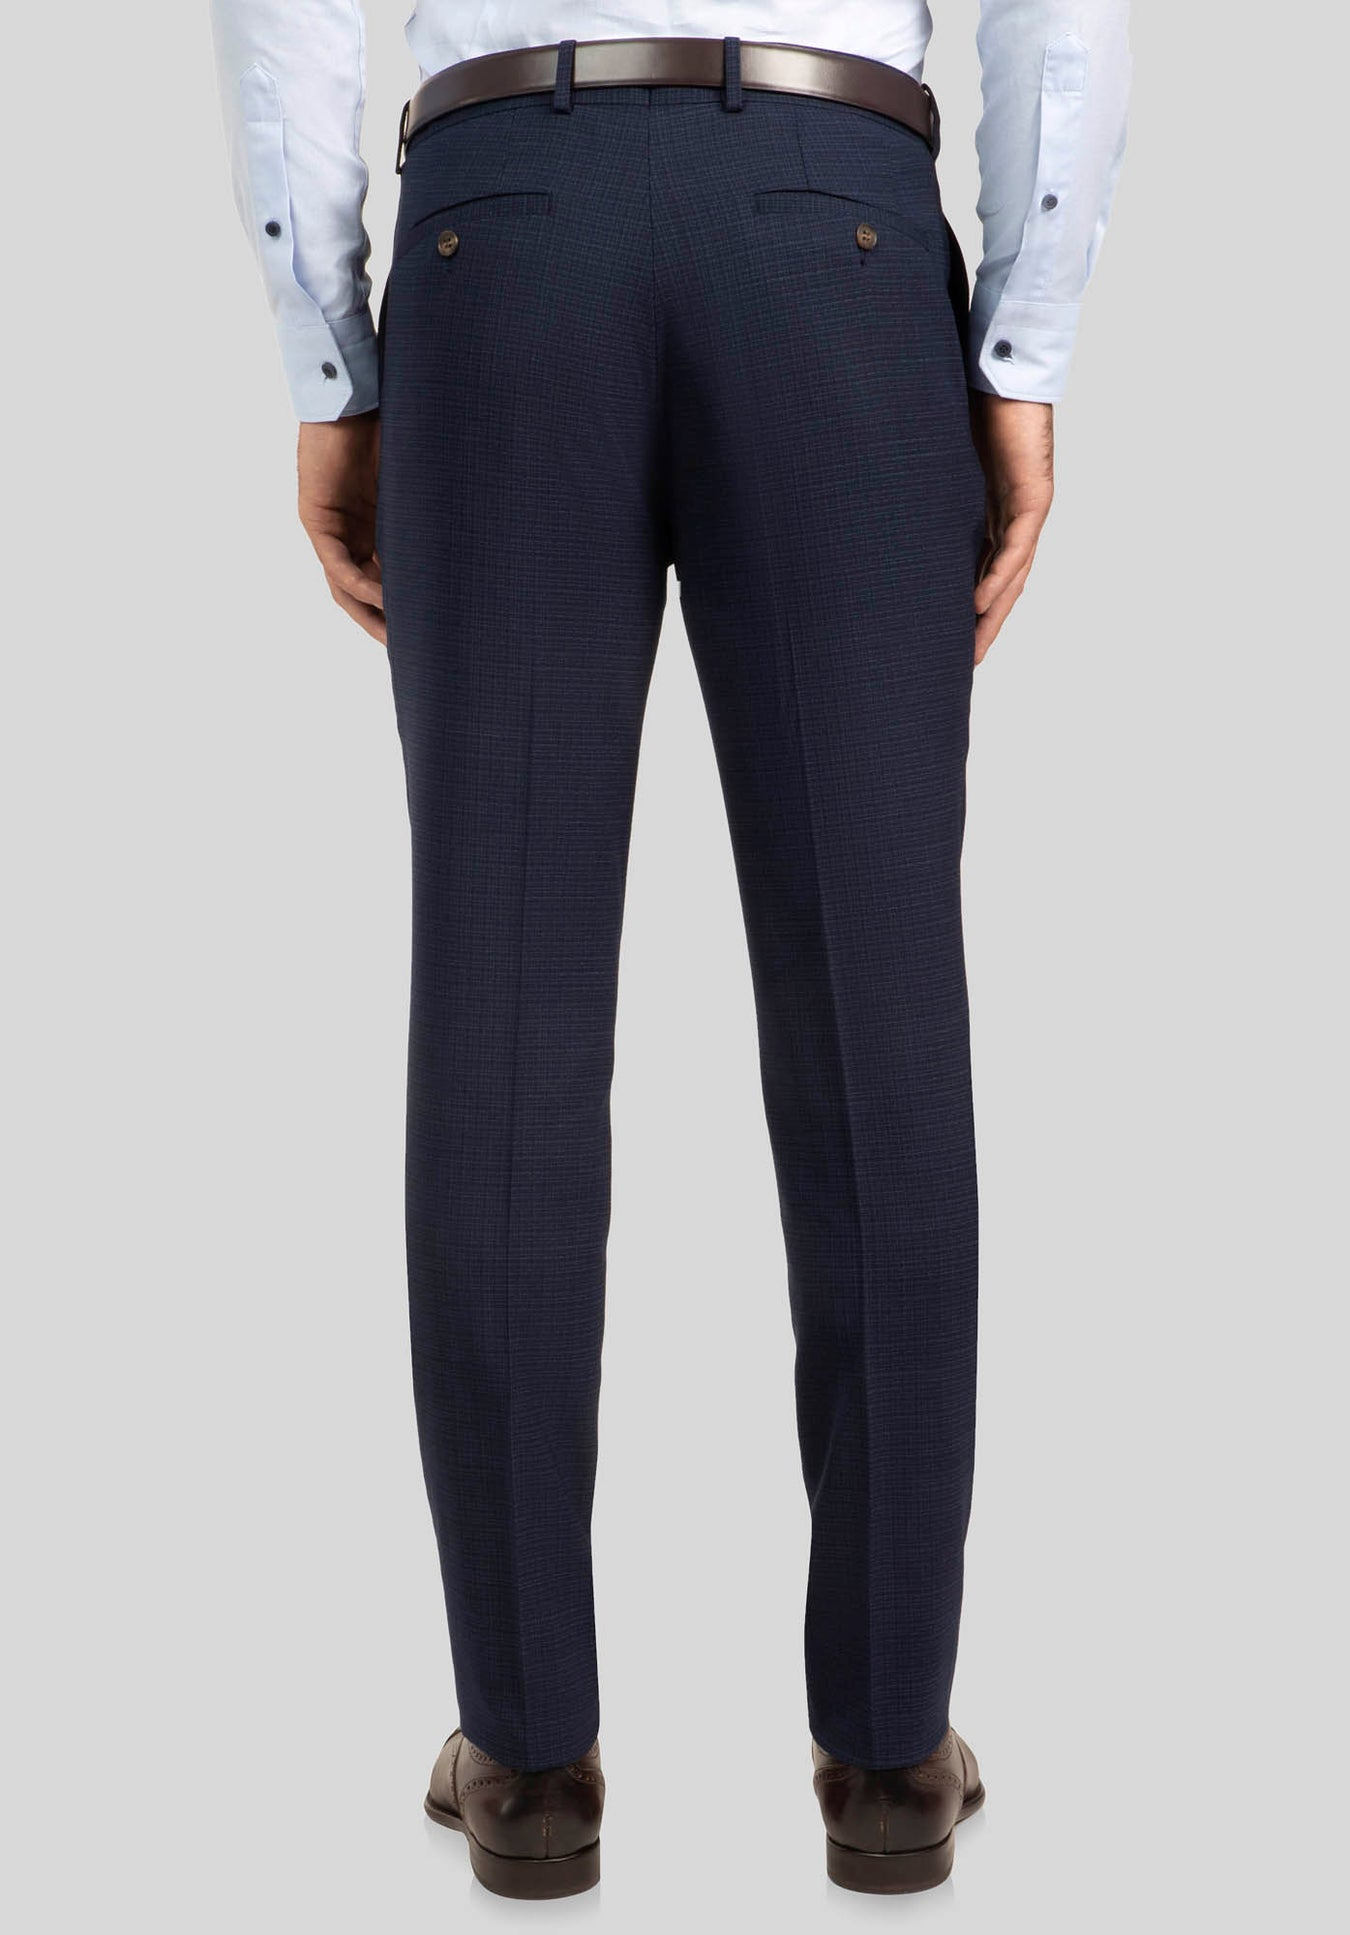 CAPER TROUSER FGJ604 - Dark Blue